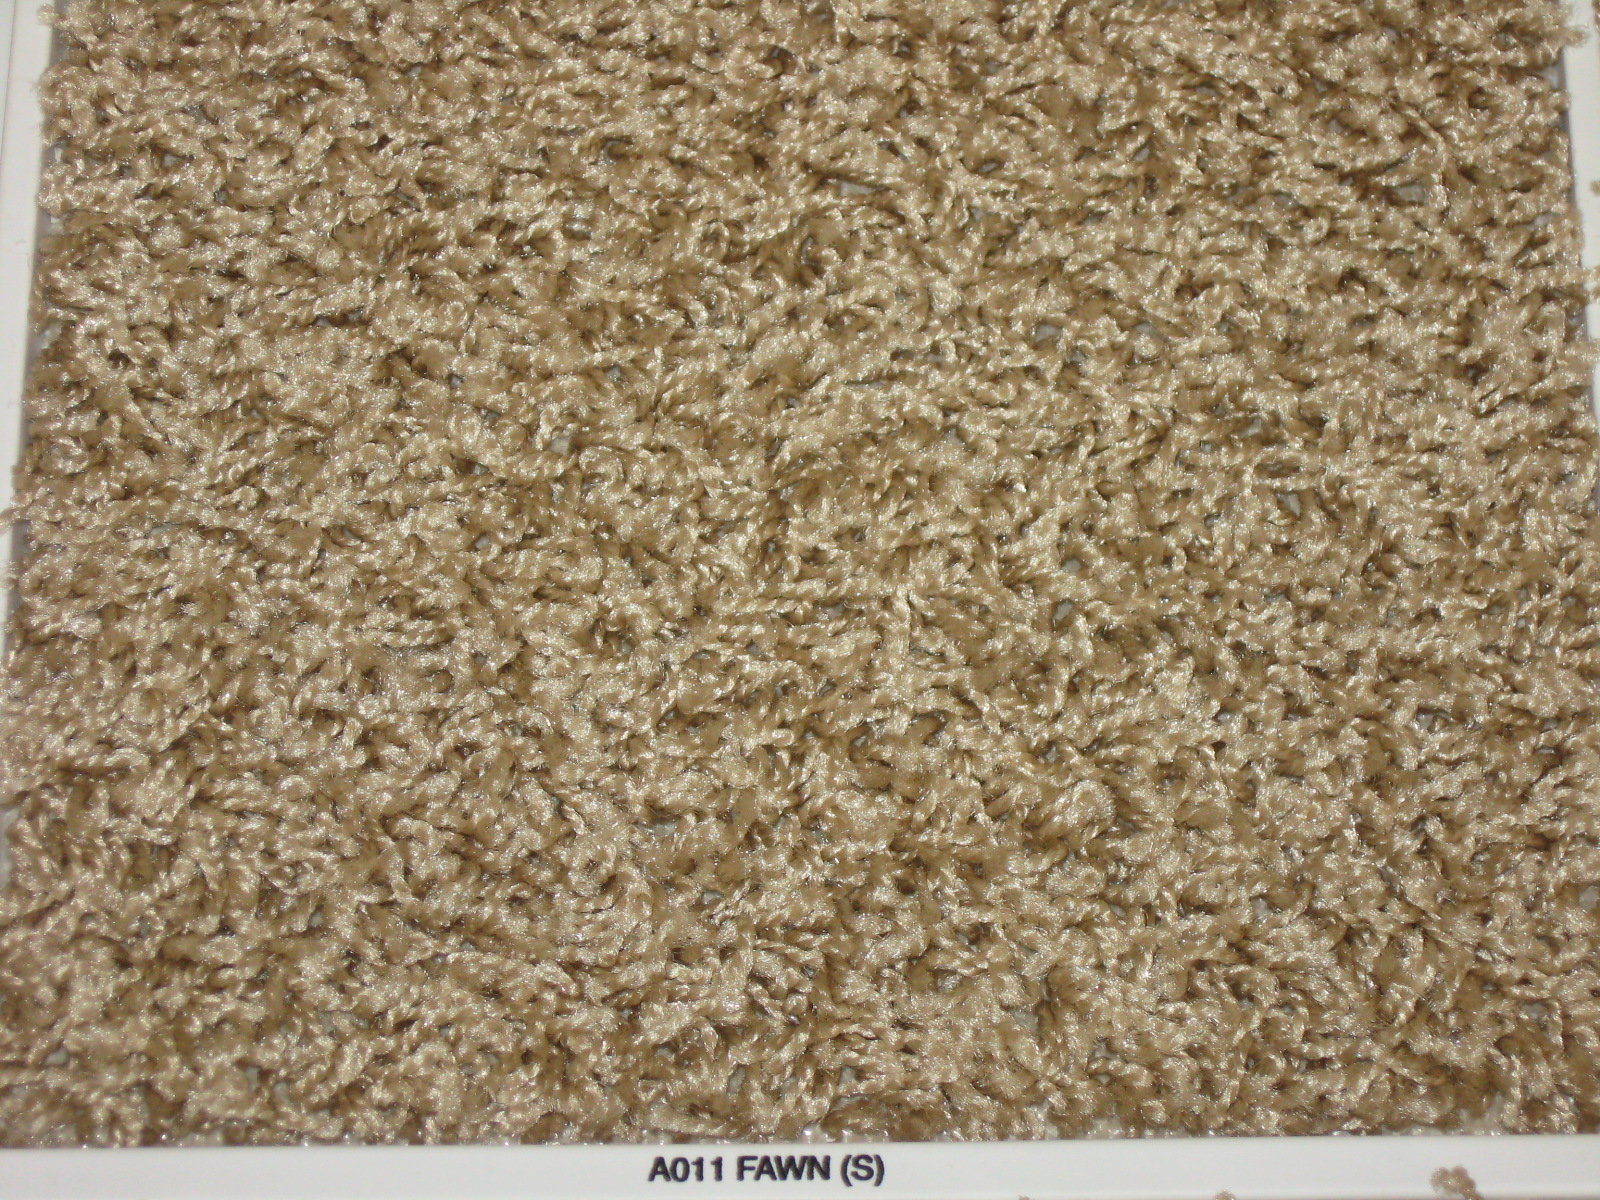 California berber carpet s carpet vidalondon for Which carpet is best